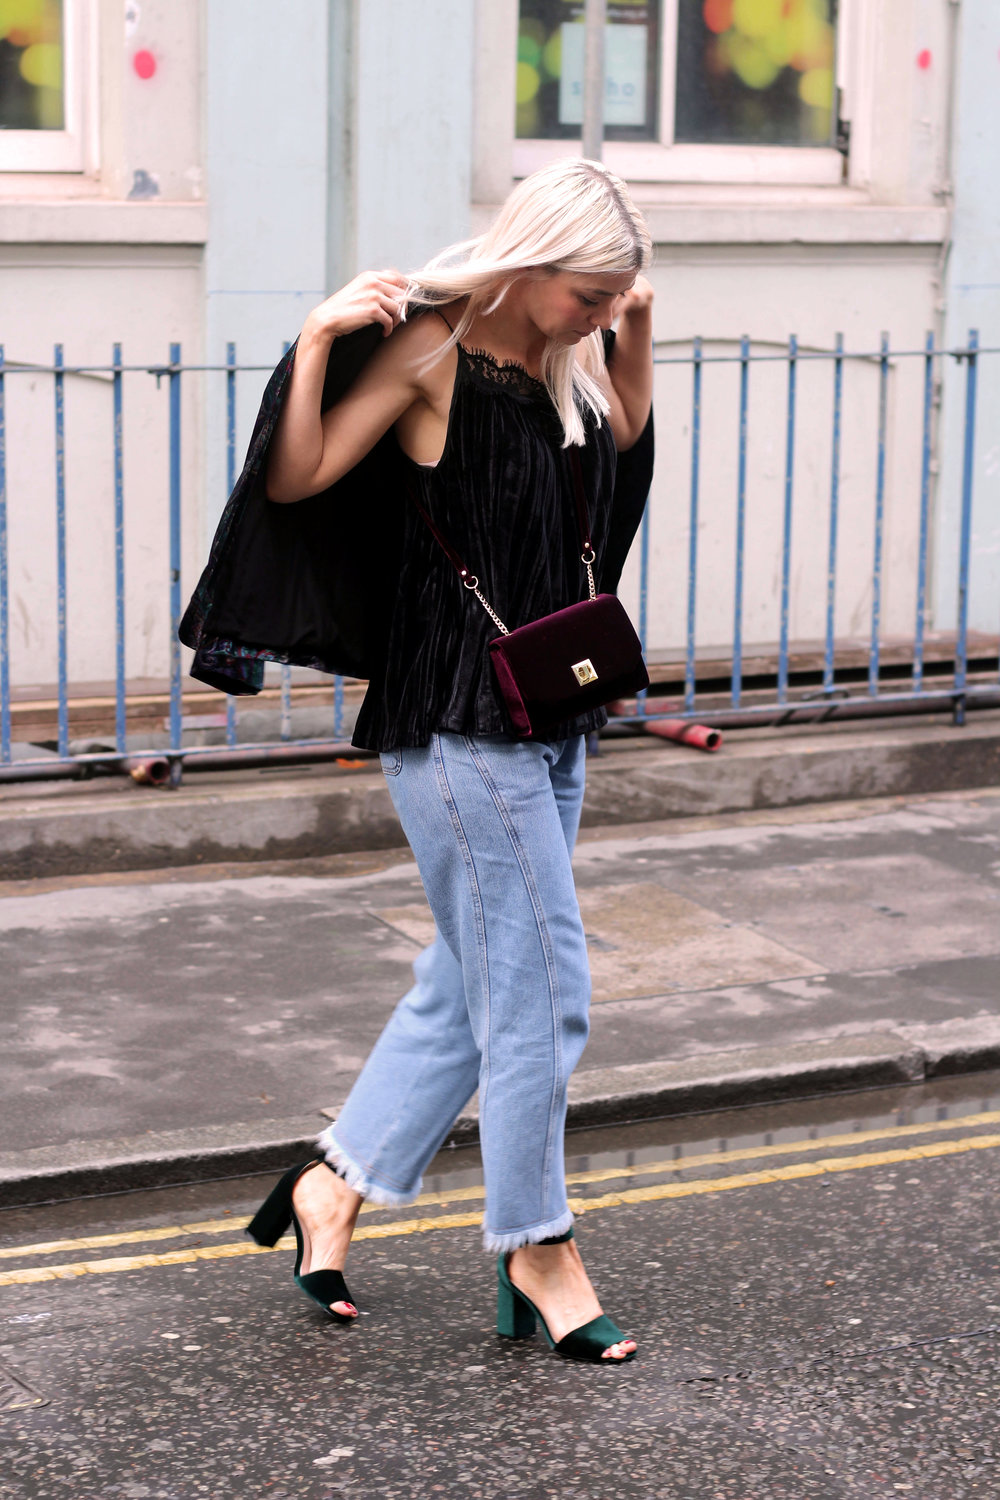 monsoon velvet collection, topshop jeans, chunky sandals, northern magpie, joey taylor 1